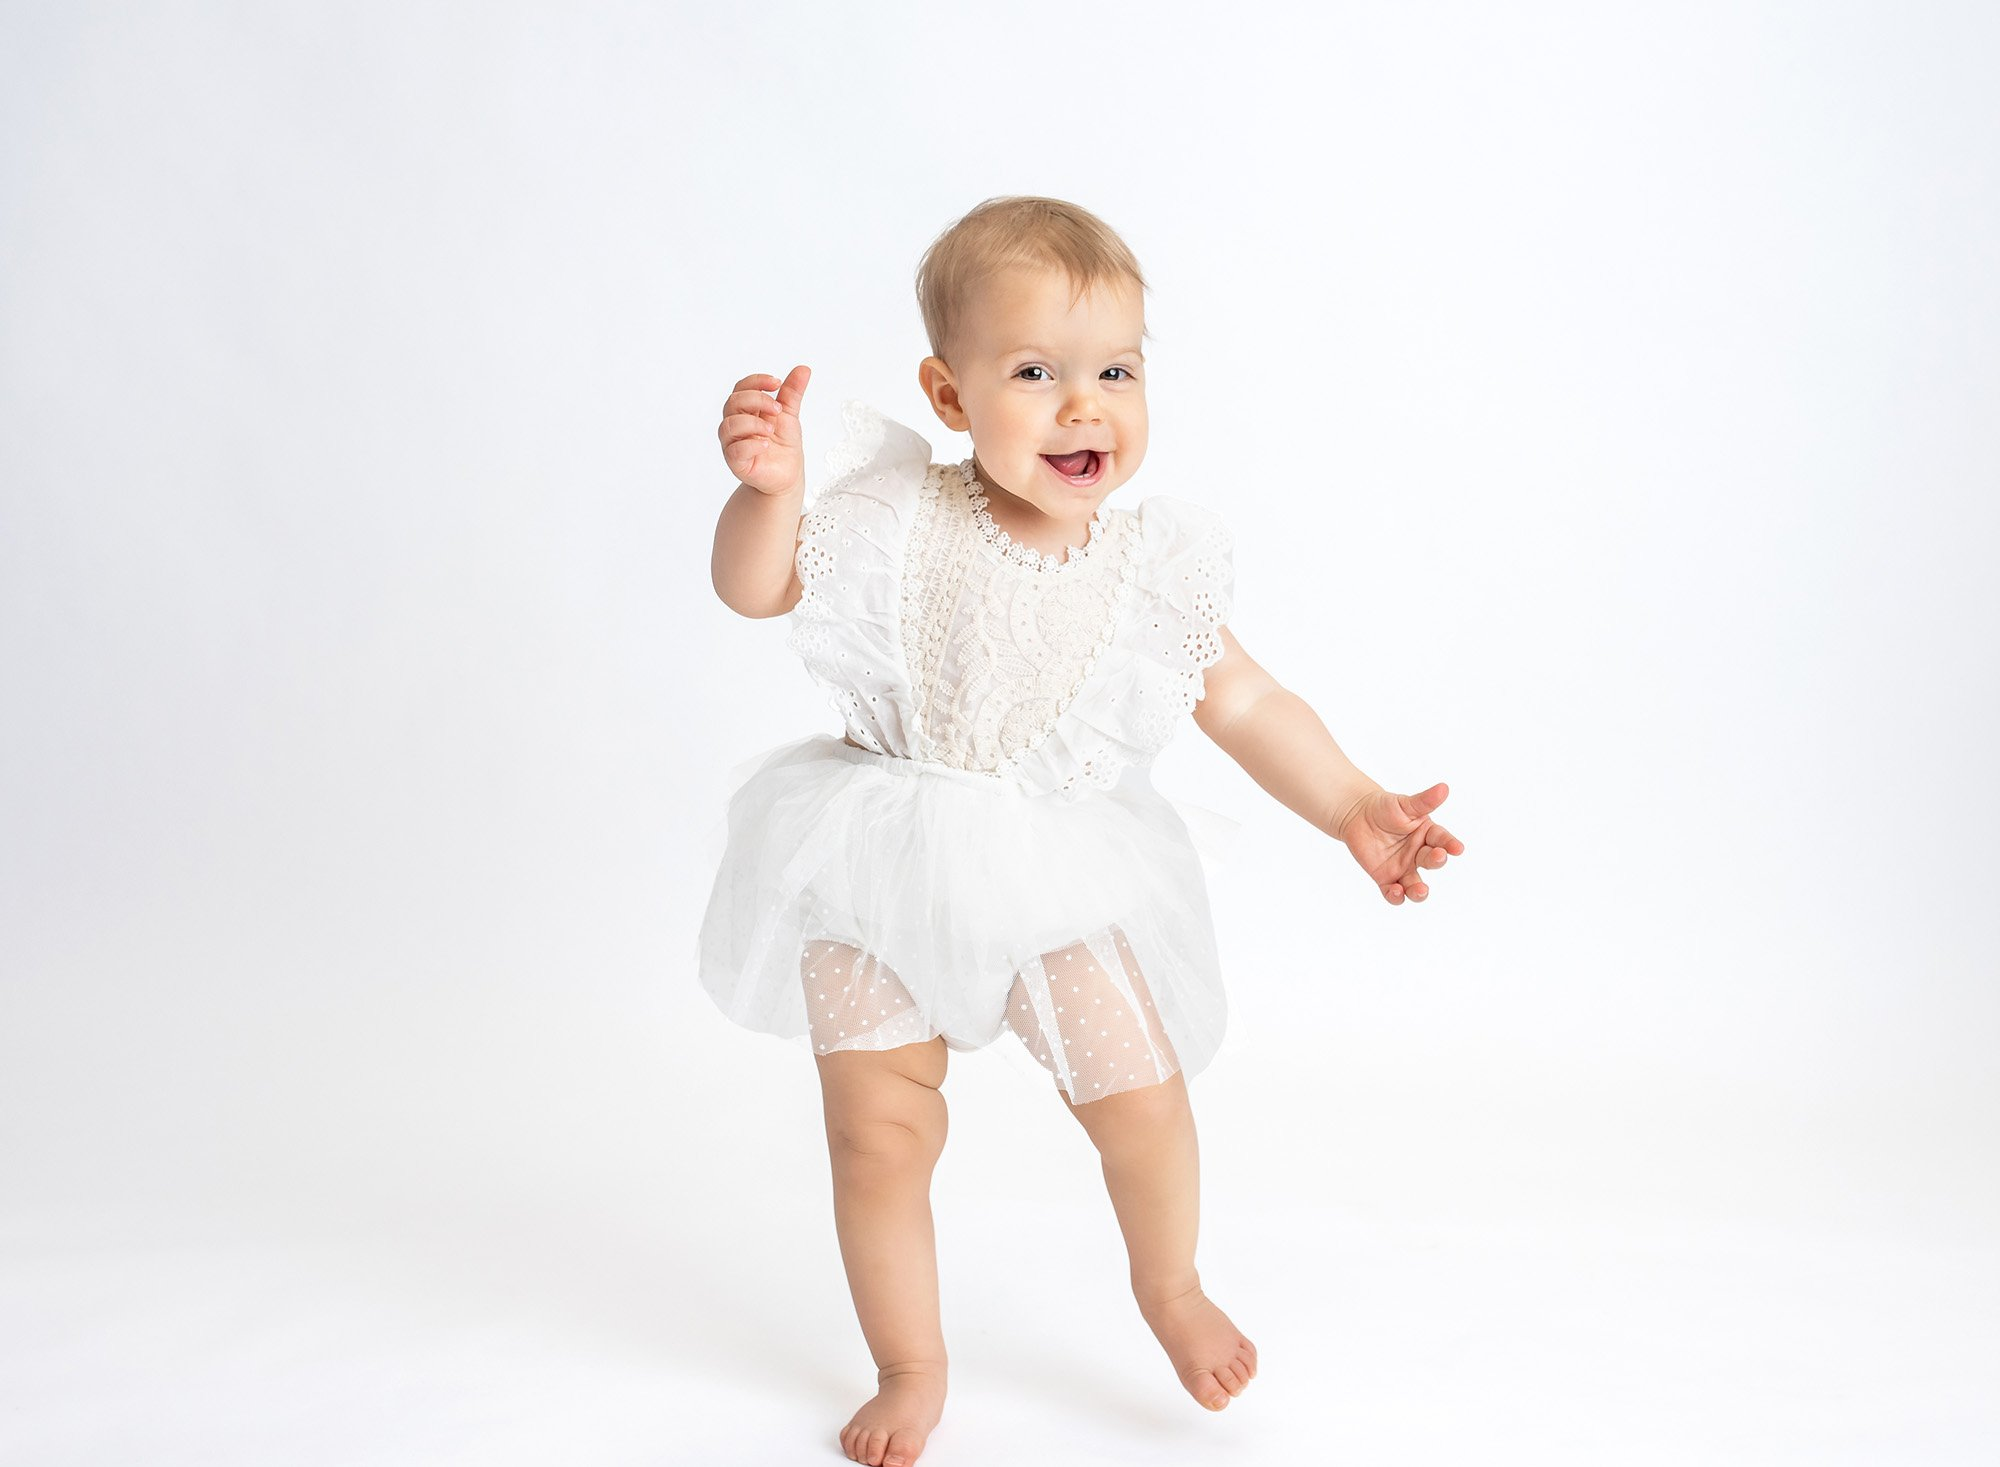 brown eyed one year old girl wearing white lace dress smiling and walking with white backdrop